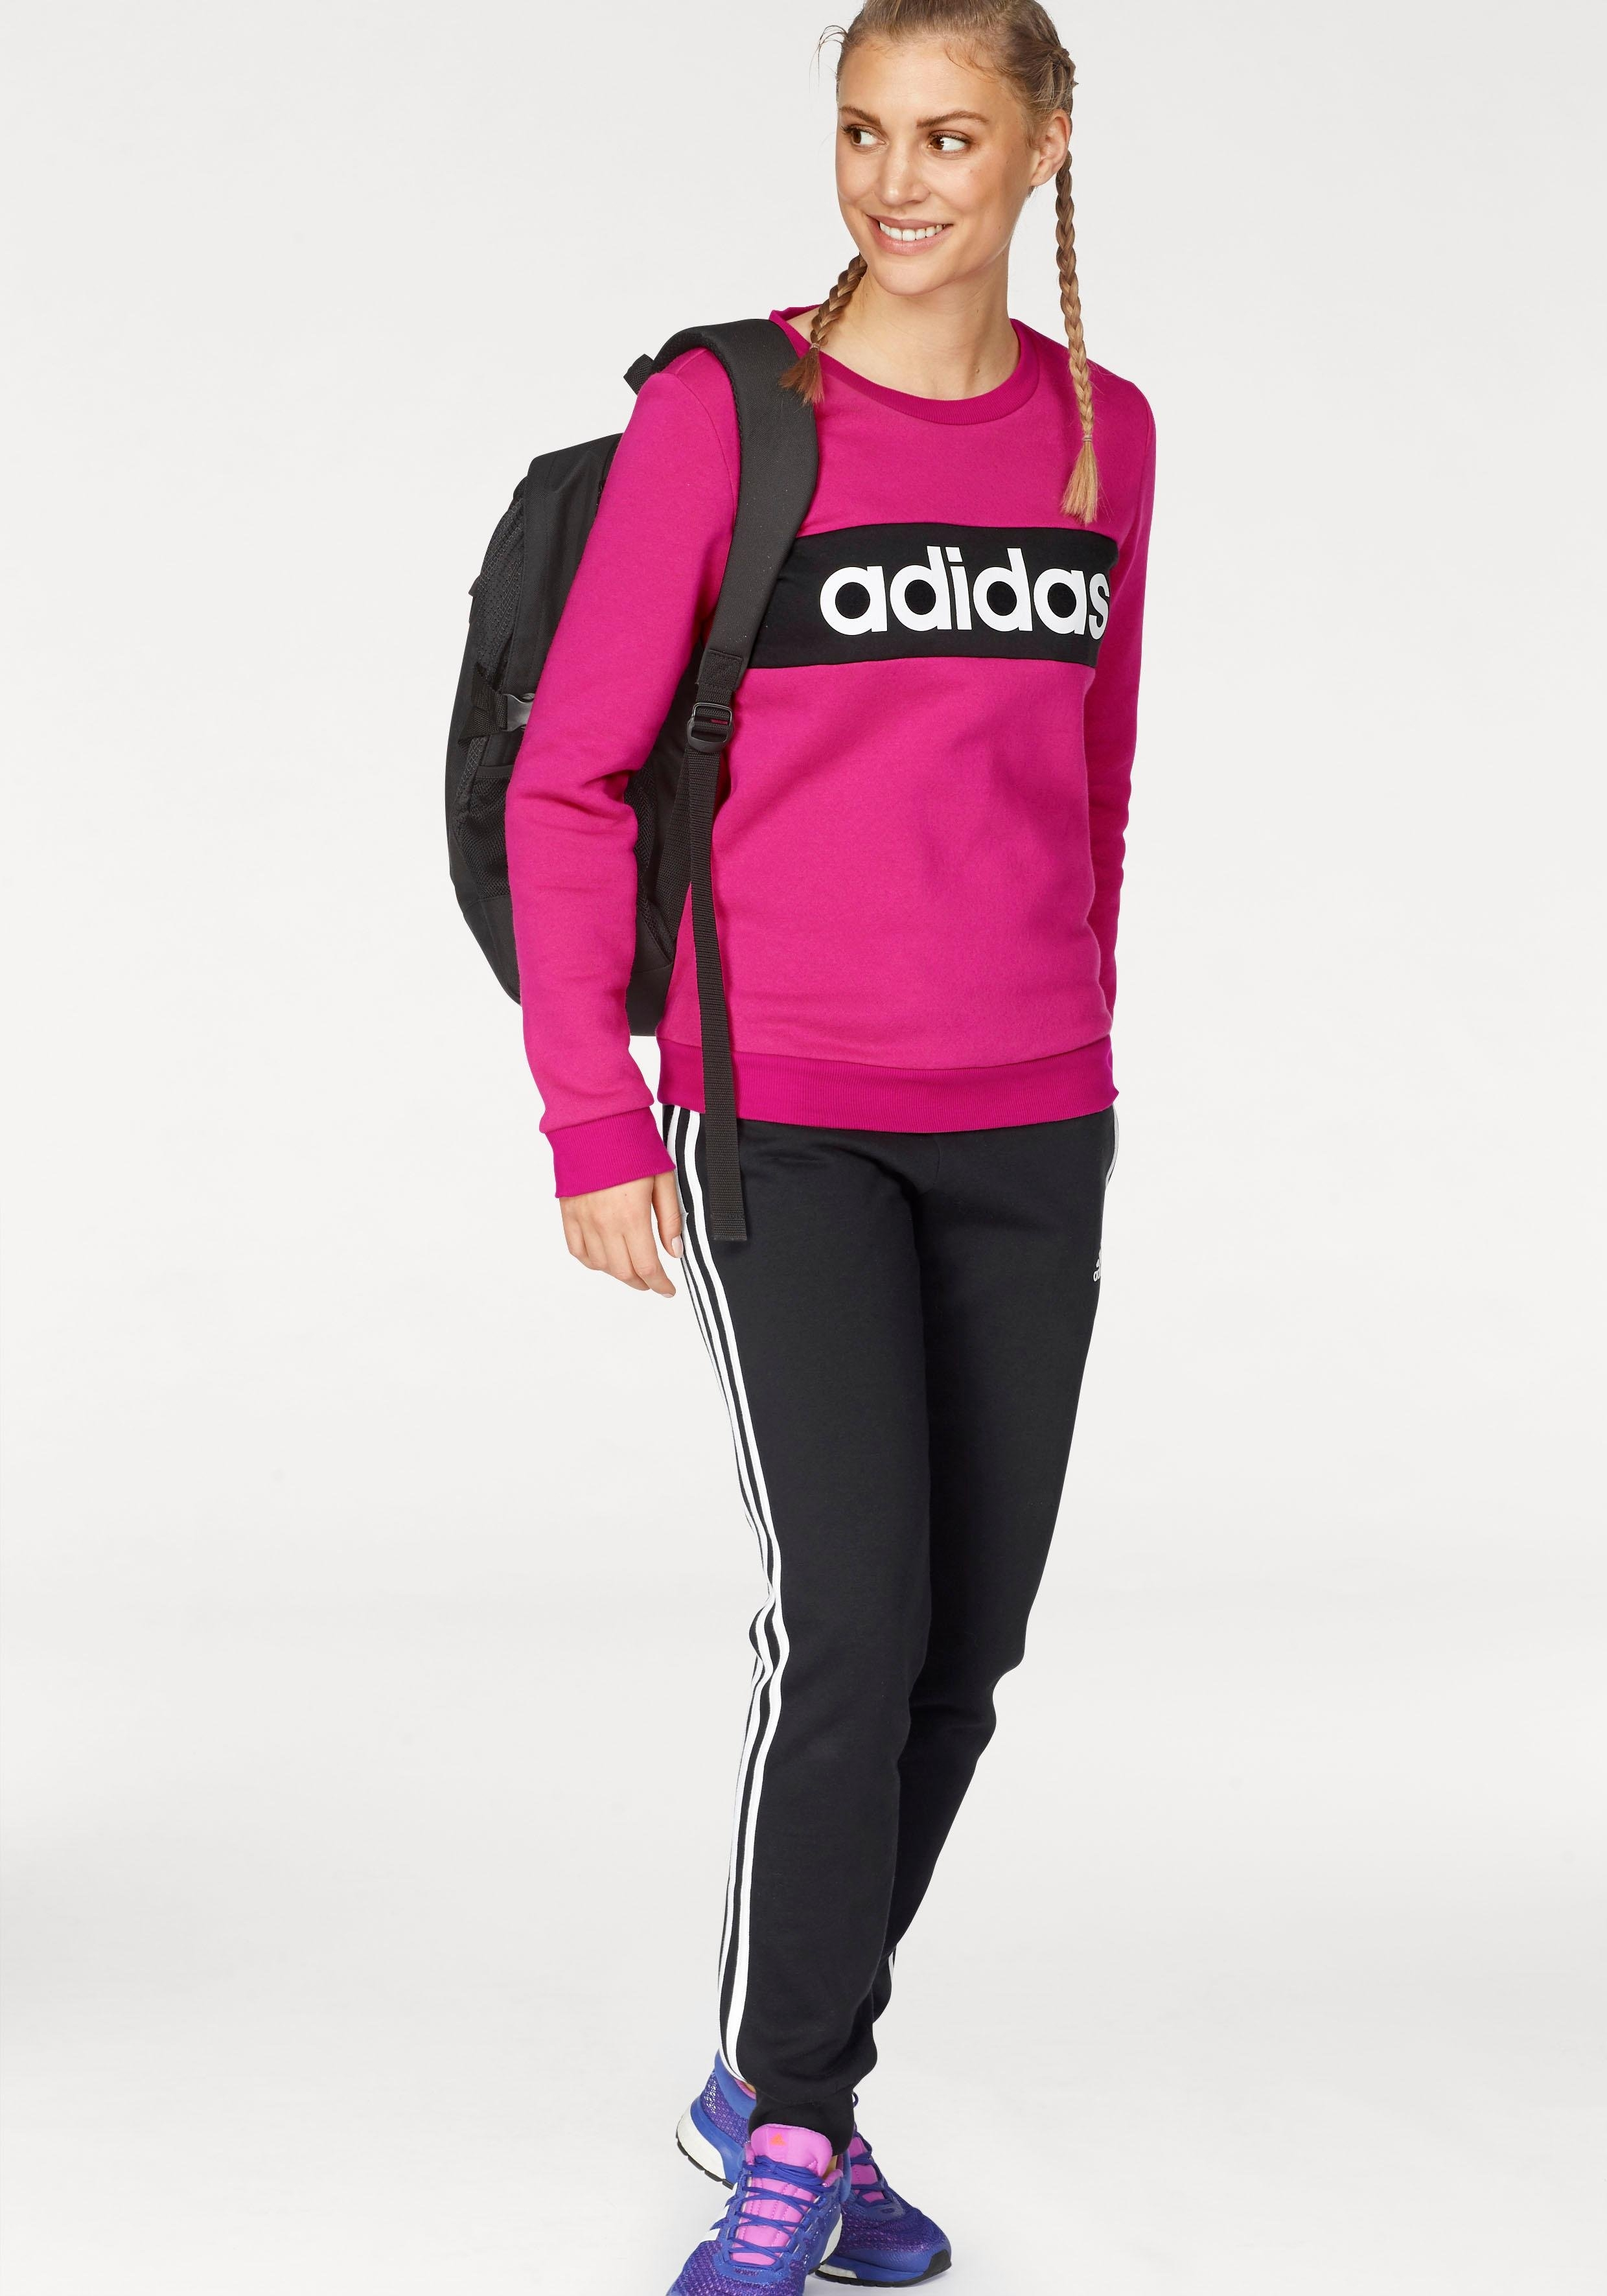 adidas Performance joggingpak »WOMEN TRACKSUIT COTTON CHILLOUT« (set, 2-delig) bij OTTO online kopen